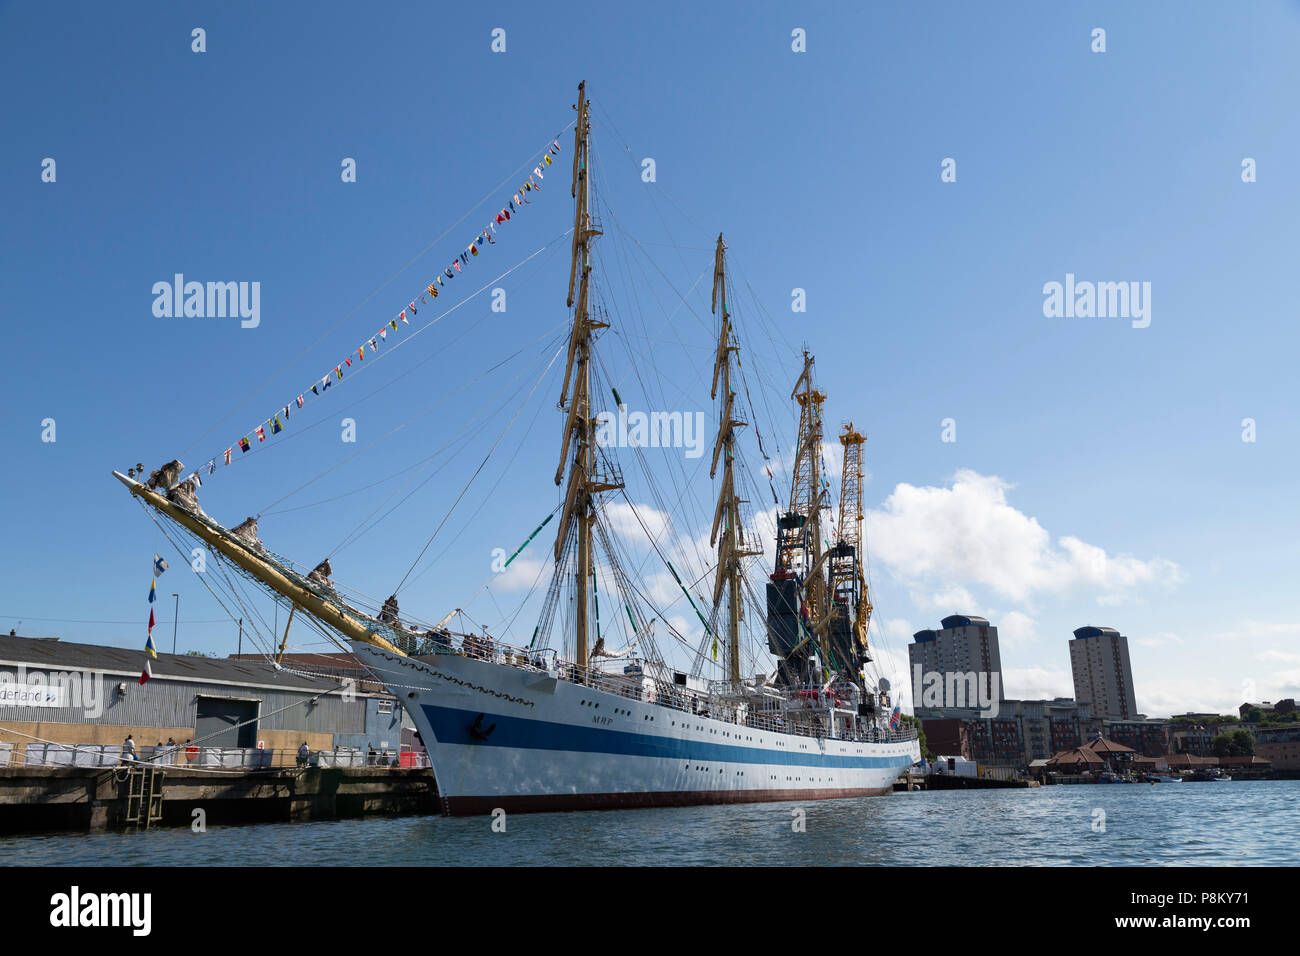 Sunderland, UK. 12th July, 2018. Mir, a Russian ship, the largest participating in the Tall Ships Race at Sunderland in north-east England. The tall ships will be in Sunderland from 11 to 14 July before departing on the first leg of the 2018 Tall Ships Race, to Ebsjerg in Denmark. Credit: Stuart Forster/Alamy Live News - Stock Image